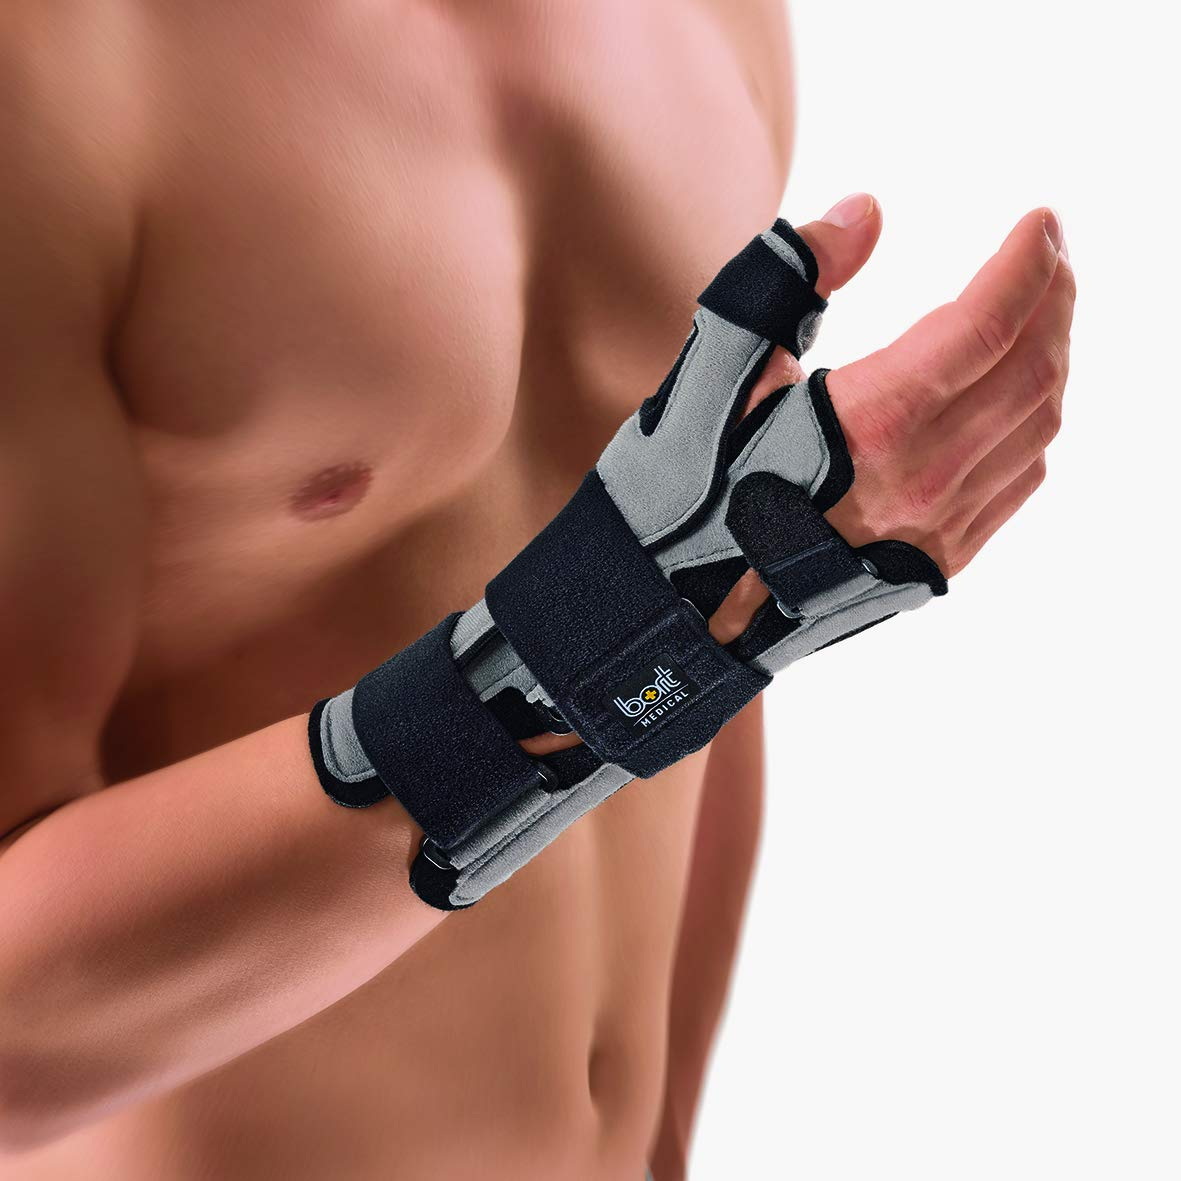 112050 SellaTex%C2%AE Fracture Removable Immobilzer